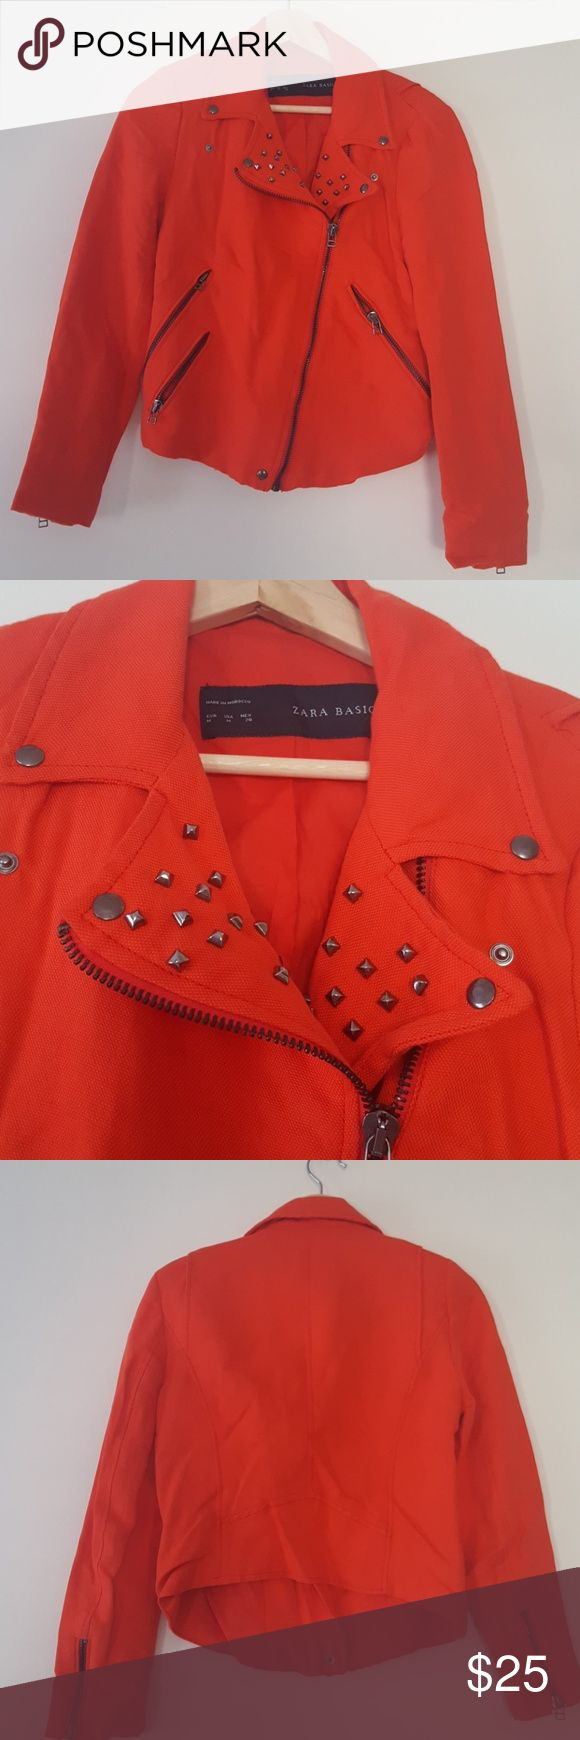 Tomato red studded linen motorcycle jacket Vibrant red motorcycle jacket with gunmetal zipper and stud details. Tight fit with a cropped back, zips on back of sleeves.  Size M, ZARA.  Cotton-linen blend, great for wearing over summer dresses. In great condition -- worn this one maybe twice. Zara Jackets & Coats Utility Jackets